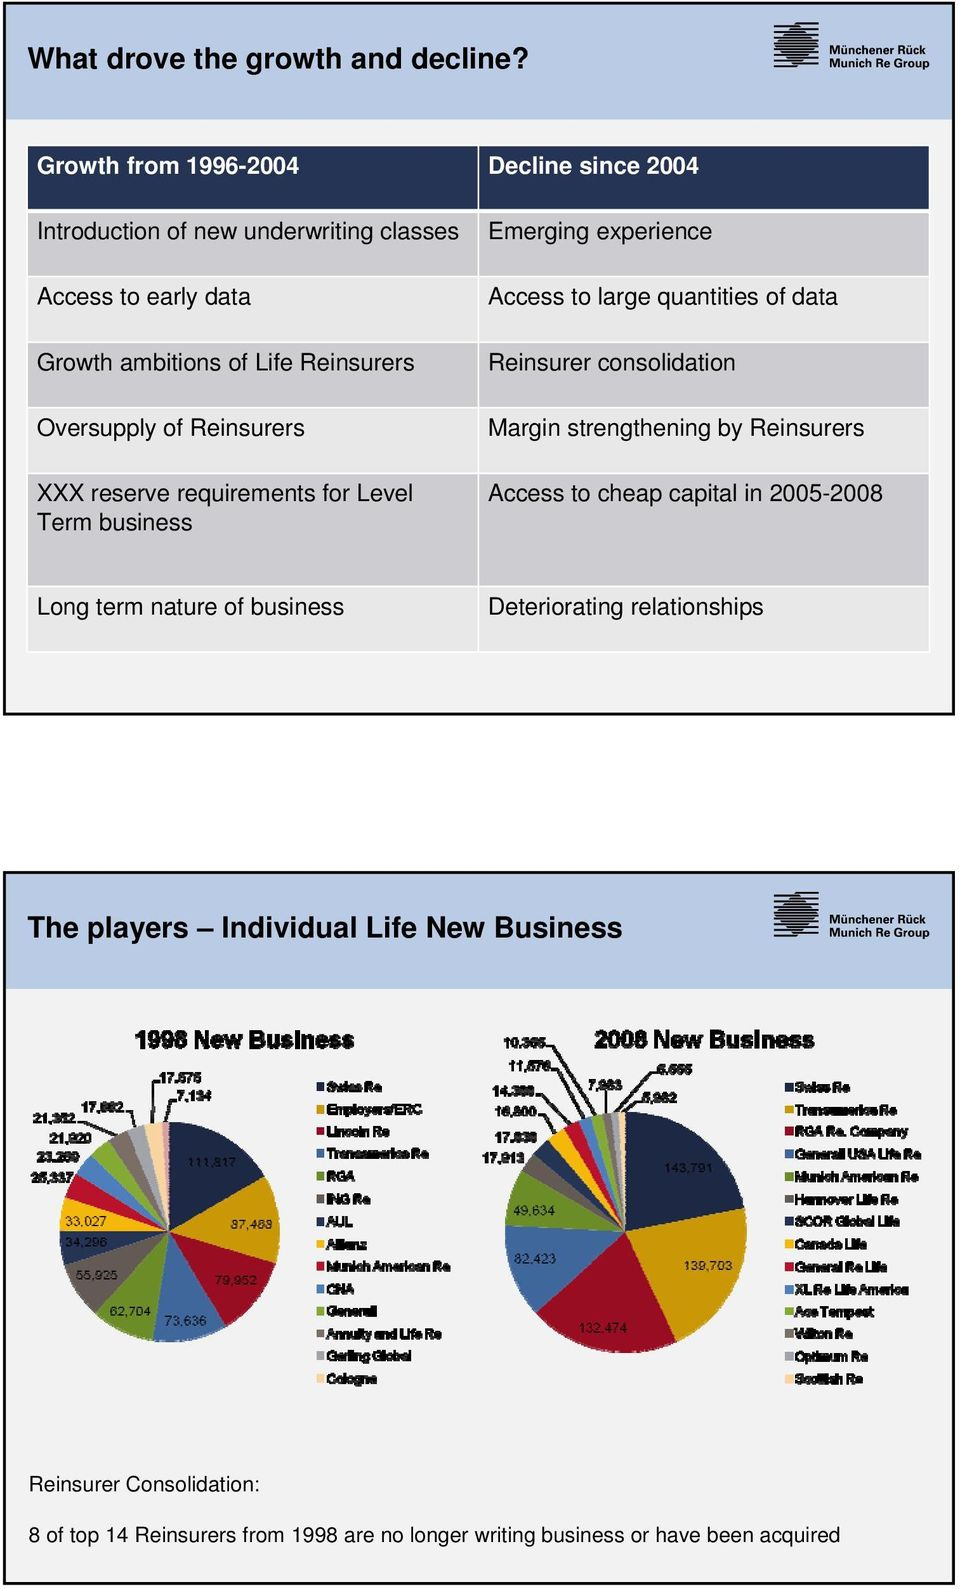 of Reinsurers XXX reserve requirements for Level Term business Emerging experience Access to large quantities of data Reinsurer consolidation Margin